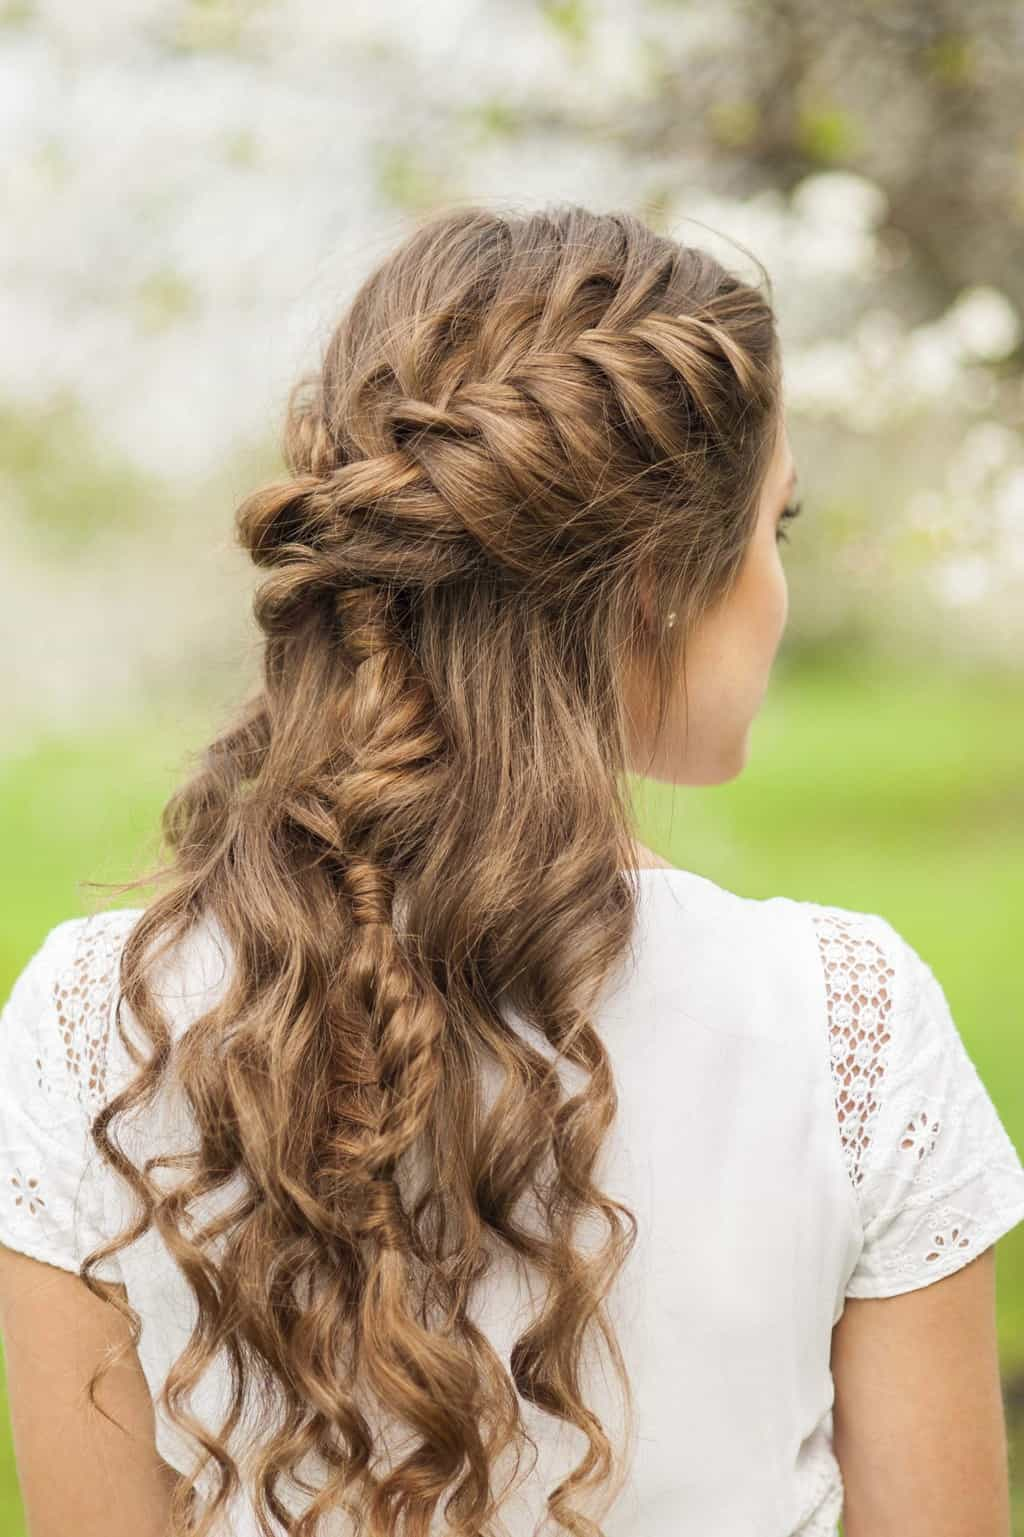 10 Elegant French Braids To Wear With Curly Hair